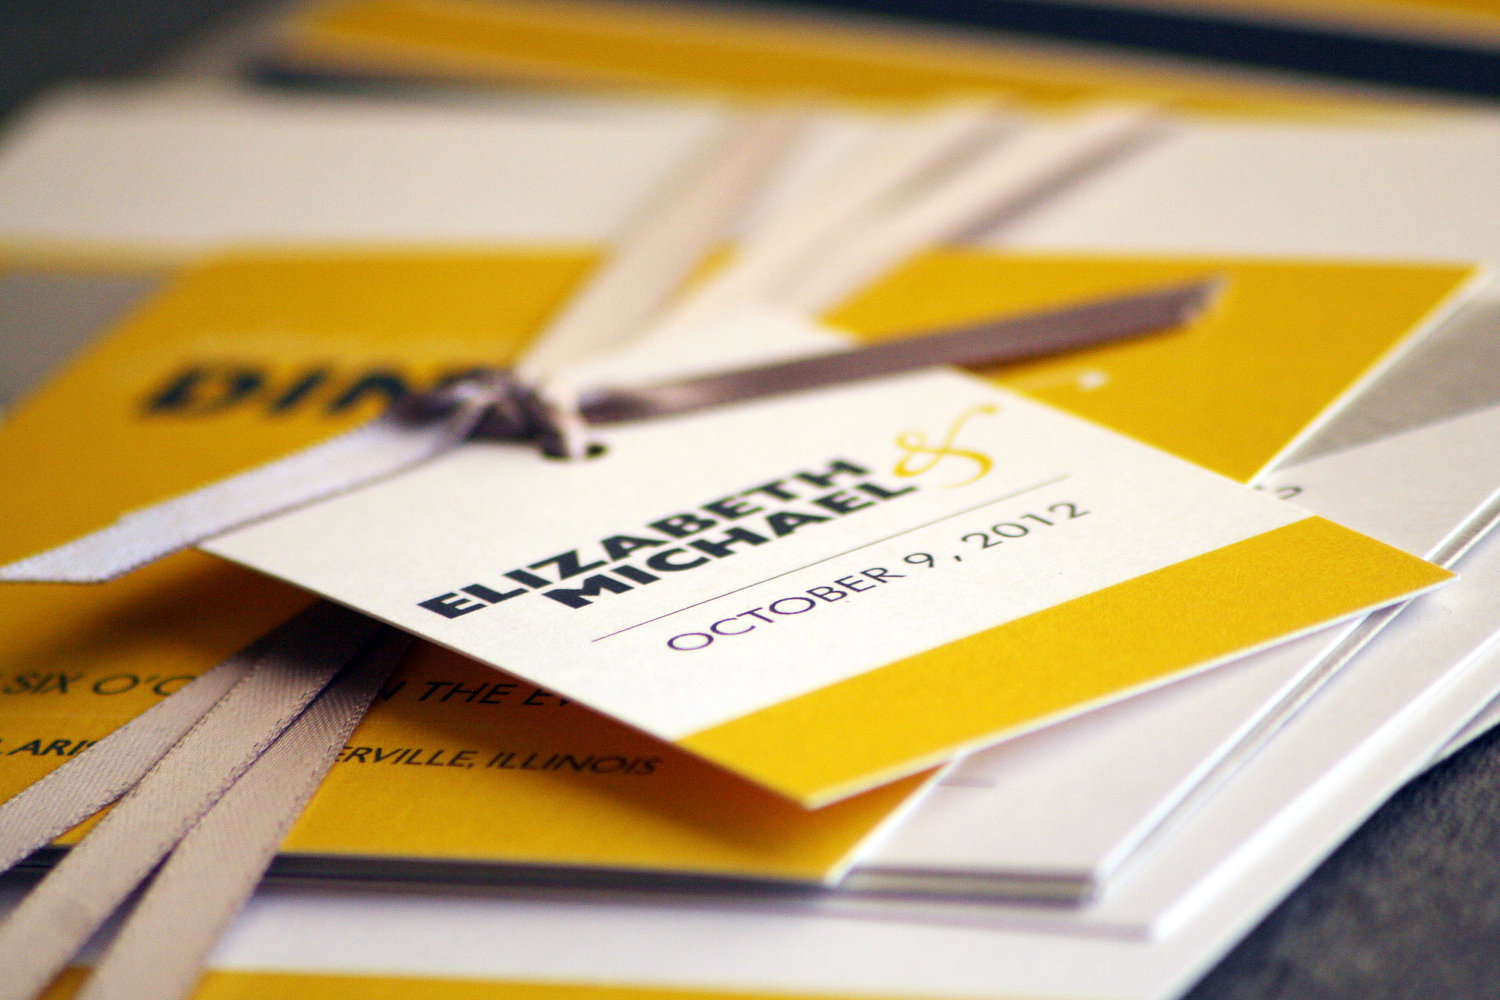 Wedding-invitations-for-modern-weddings-etsy-wedding-finds-yellow-black-bold.original